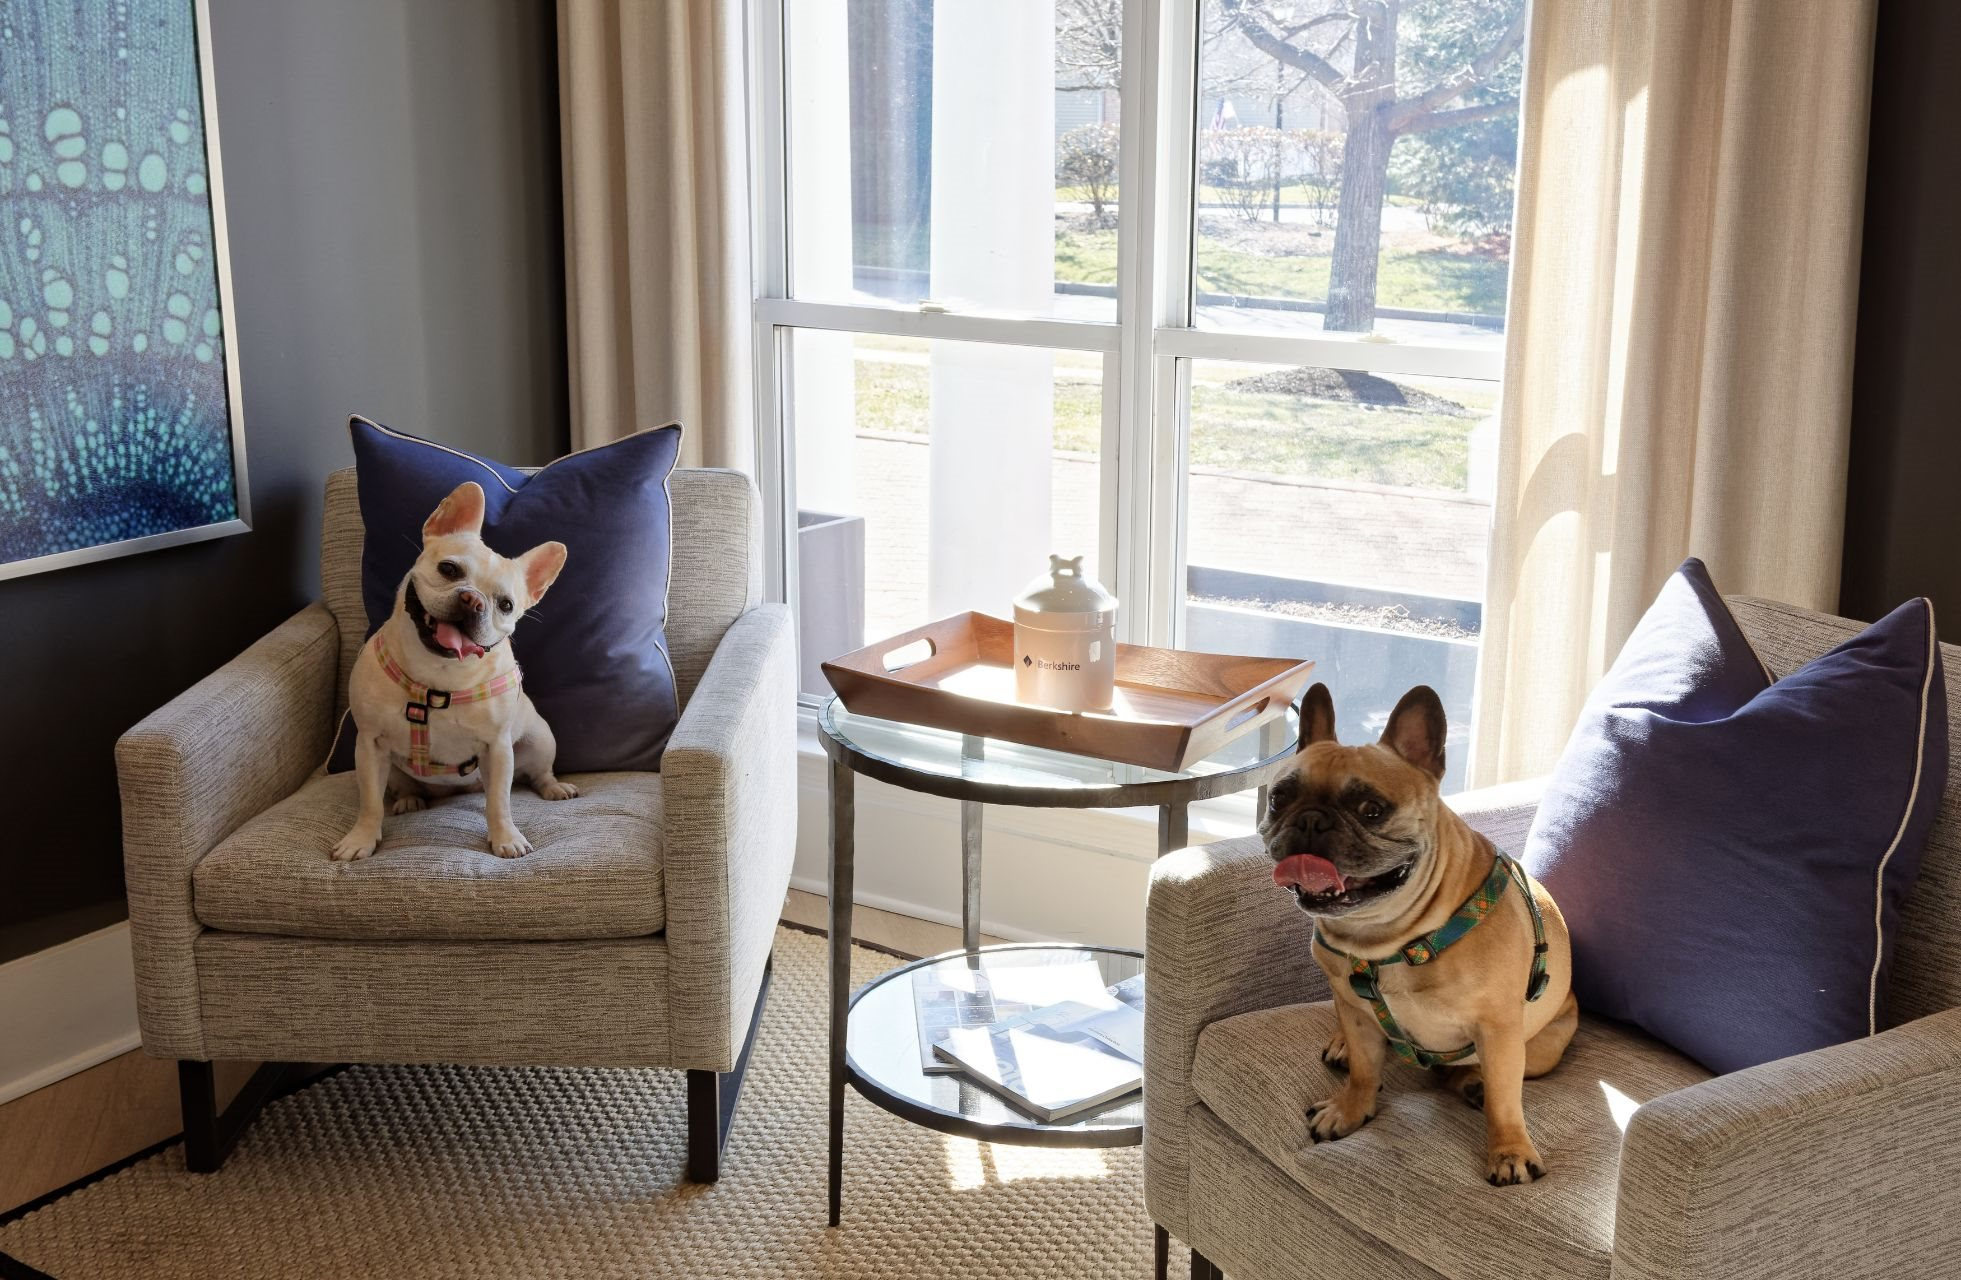 Berkshire Stewards Crossing Pet Friendly Apartments in Lawrenceville NJ. between Princeton and Trenton, easy access to Hamilton Train Station, I-95, NJ Turnpike,  1000 Stewards Crossing Way, Lawrenceville NJ 08648